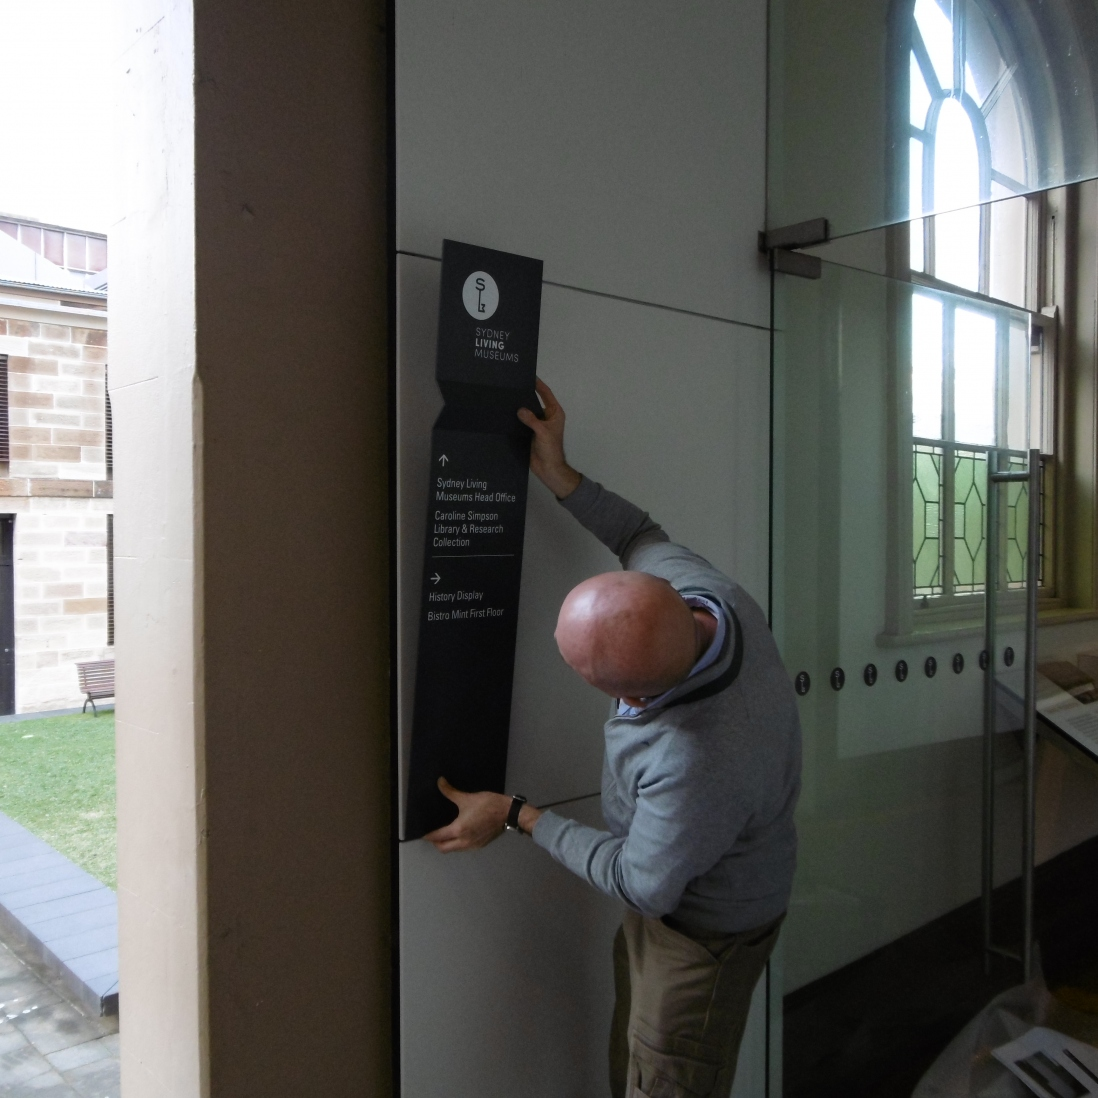 Man affixing sign to wall near door with window in background.